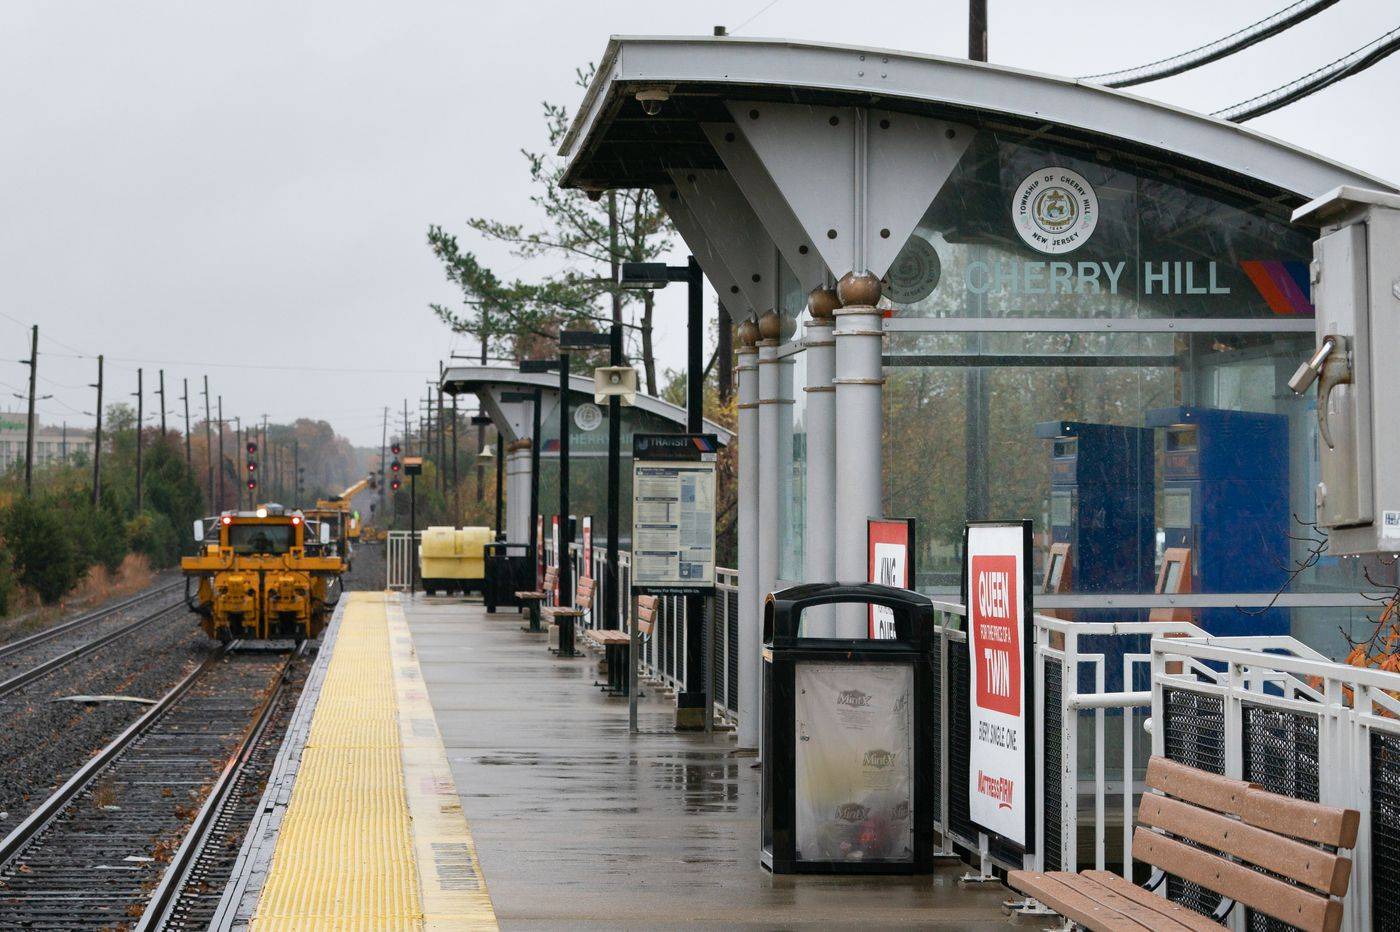 Cherry Hill's little-known train stop seen as a potentially big link